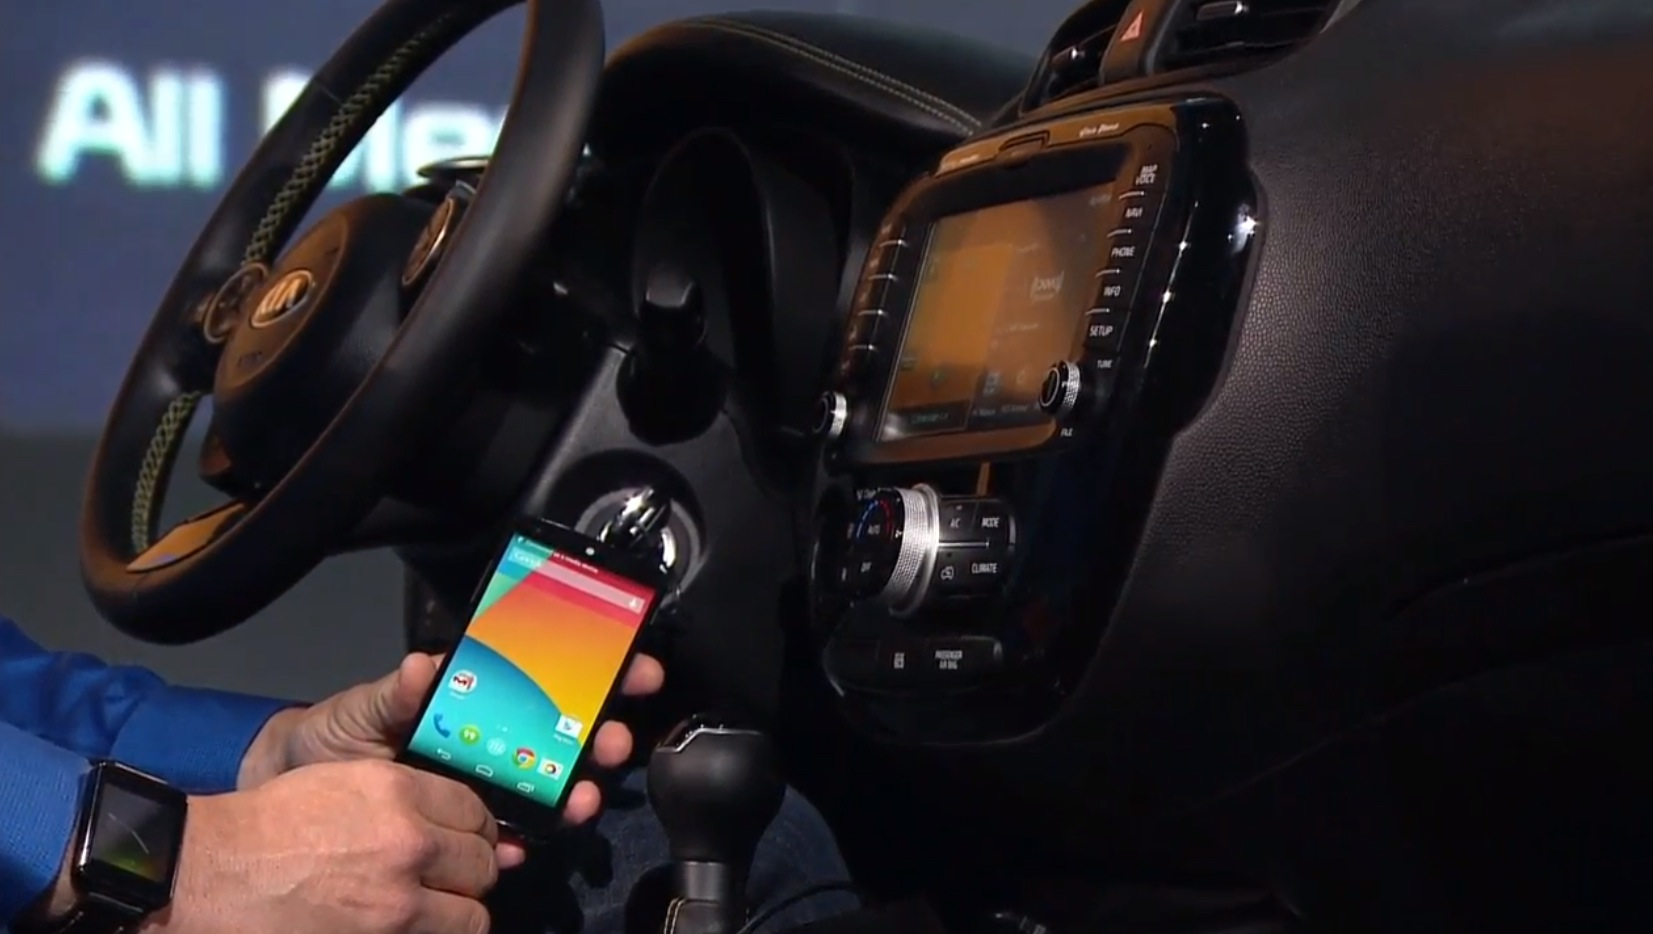 Android Auto creates a driver optimized version of your Android phone's UI on the dashboard (source: Google)